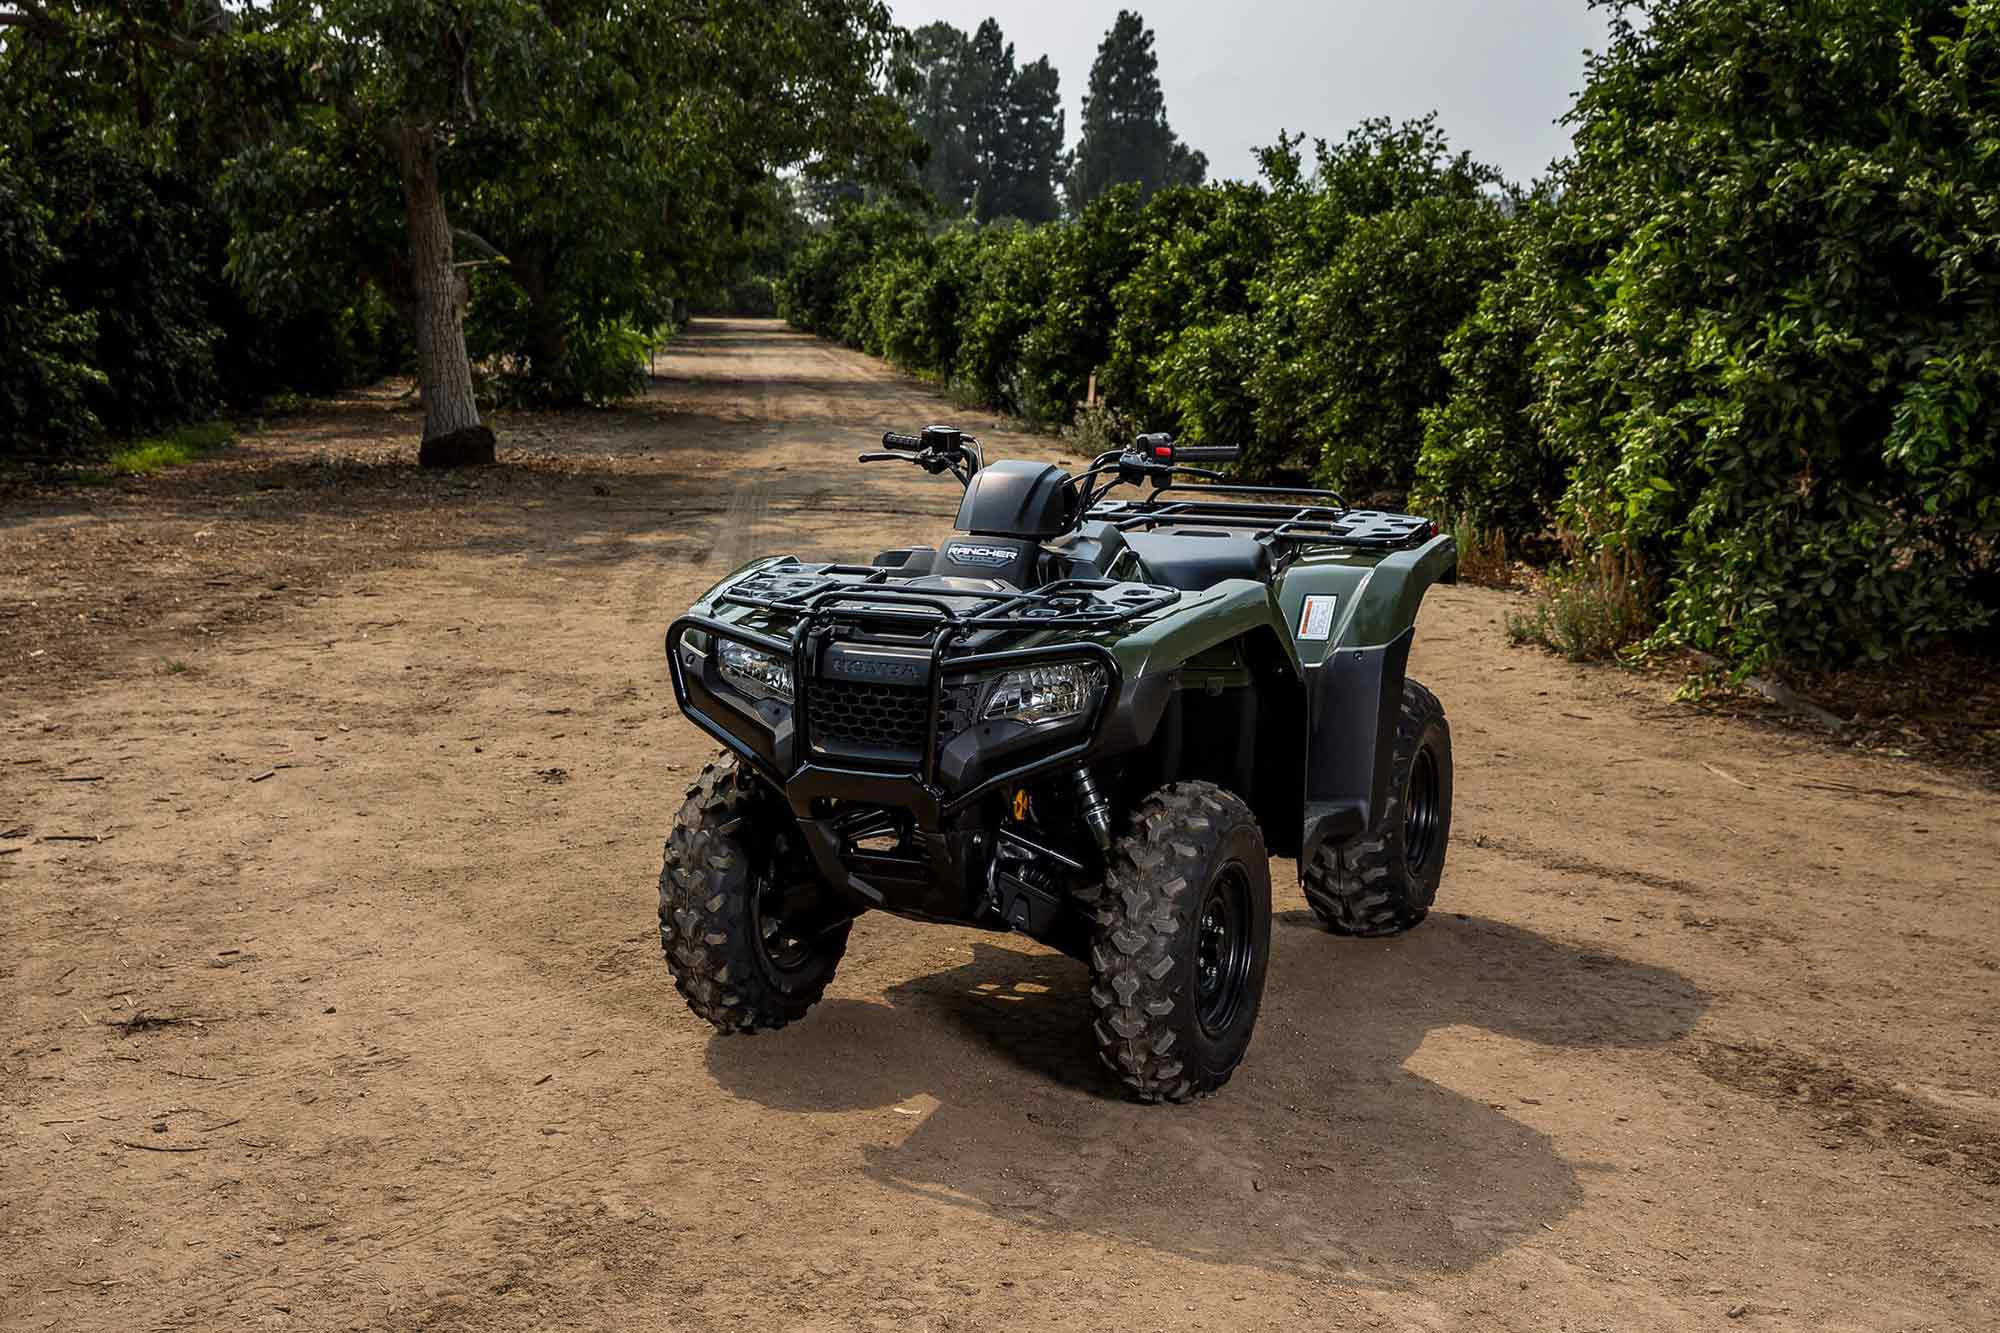 Coming in at 580 pounds wet, Honda's FourTrax Rancher is sprightly as compared to the 620 pounds or more competition.